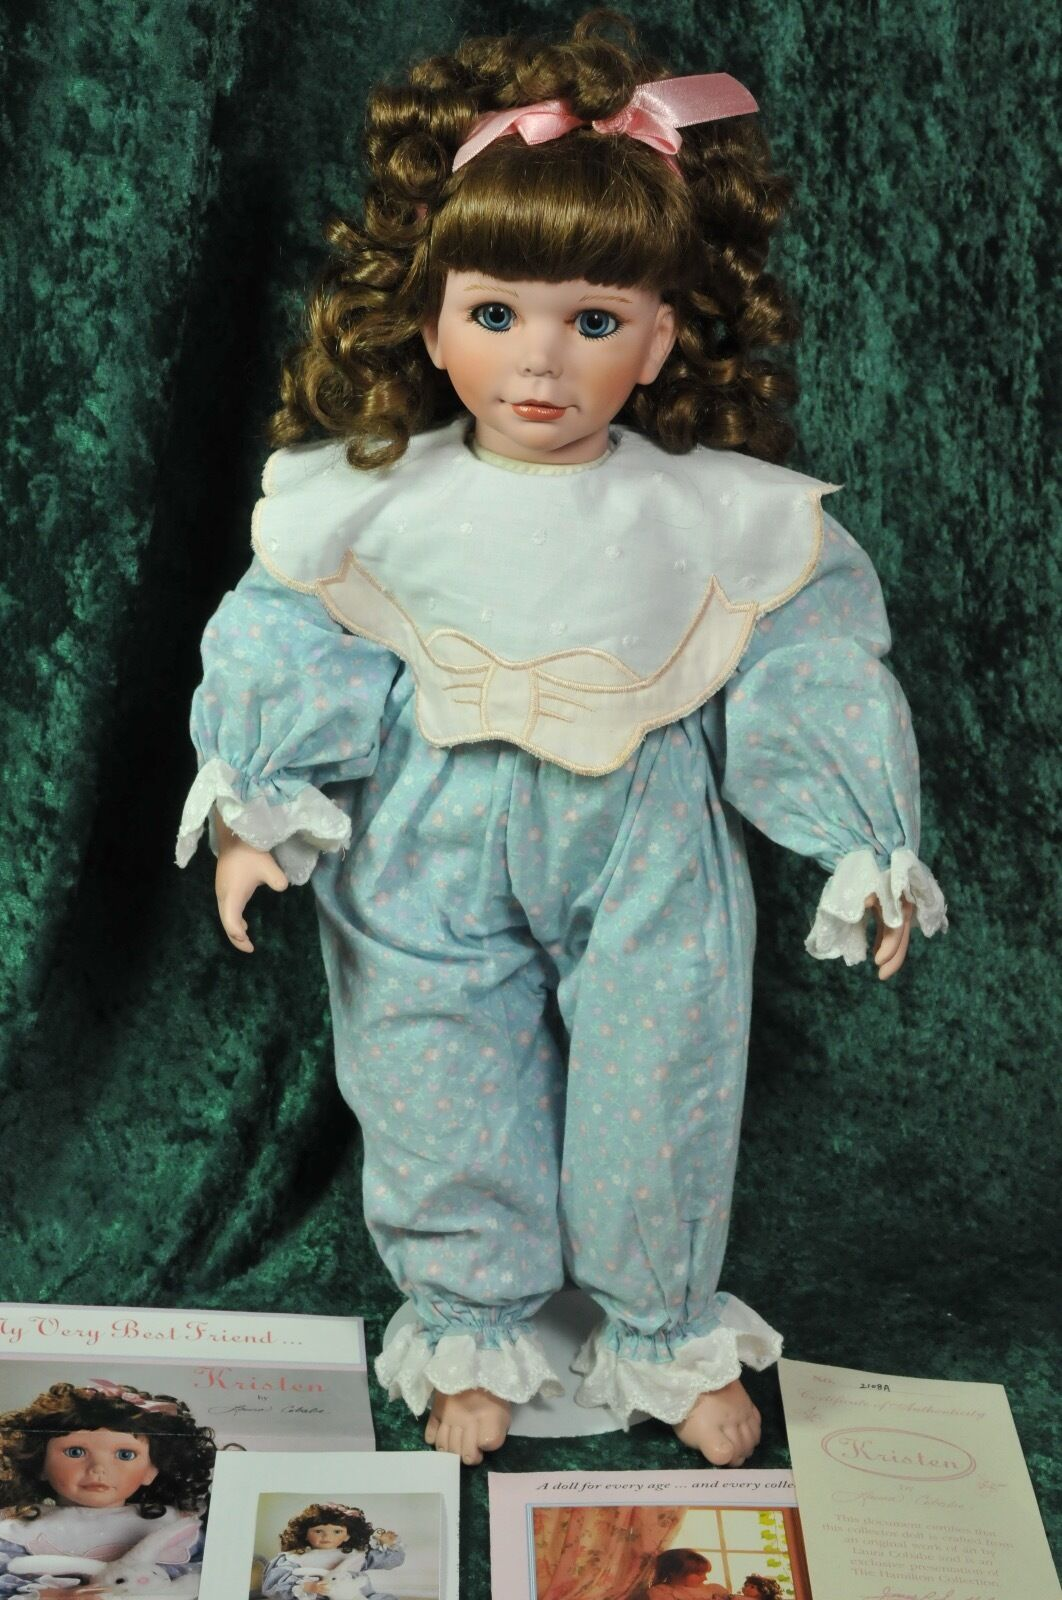 Kristen 1st Edition Vinyl Collectible Doll Laura Cobabe Hamilton Collection COA